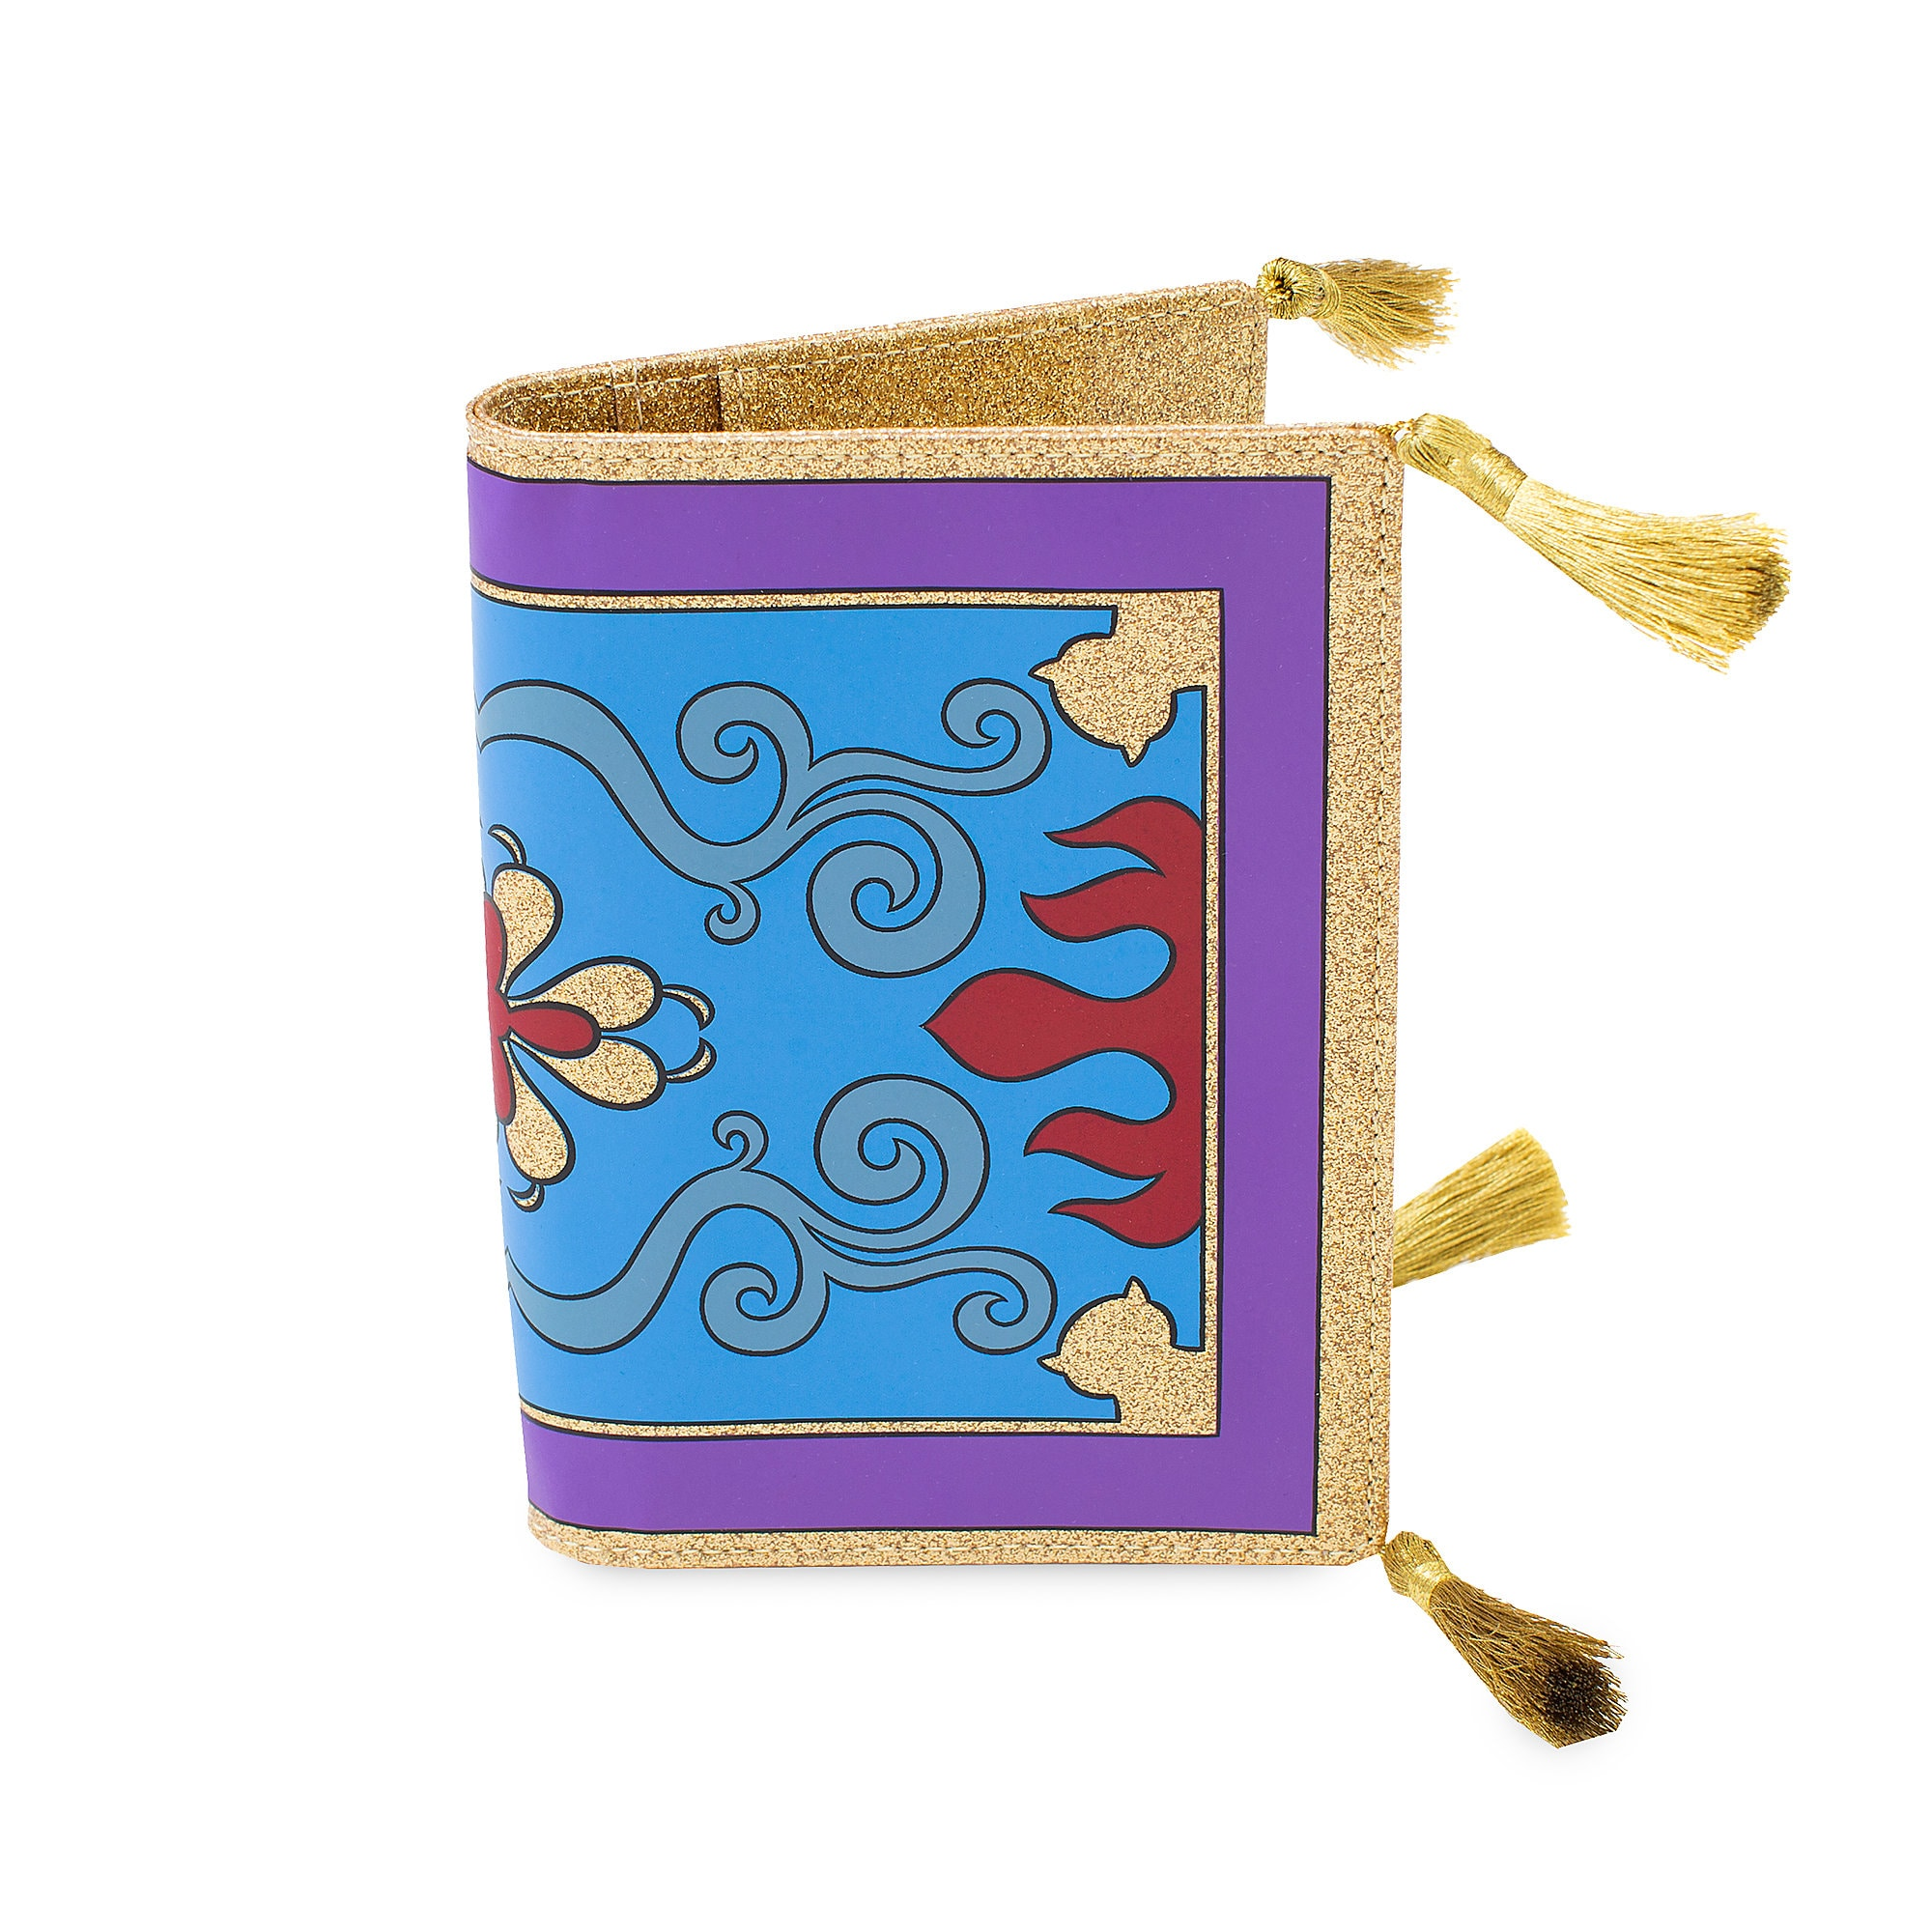 Magic Carpet Passport Holder by Cakeworthy - Aladdin Official shopDisney